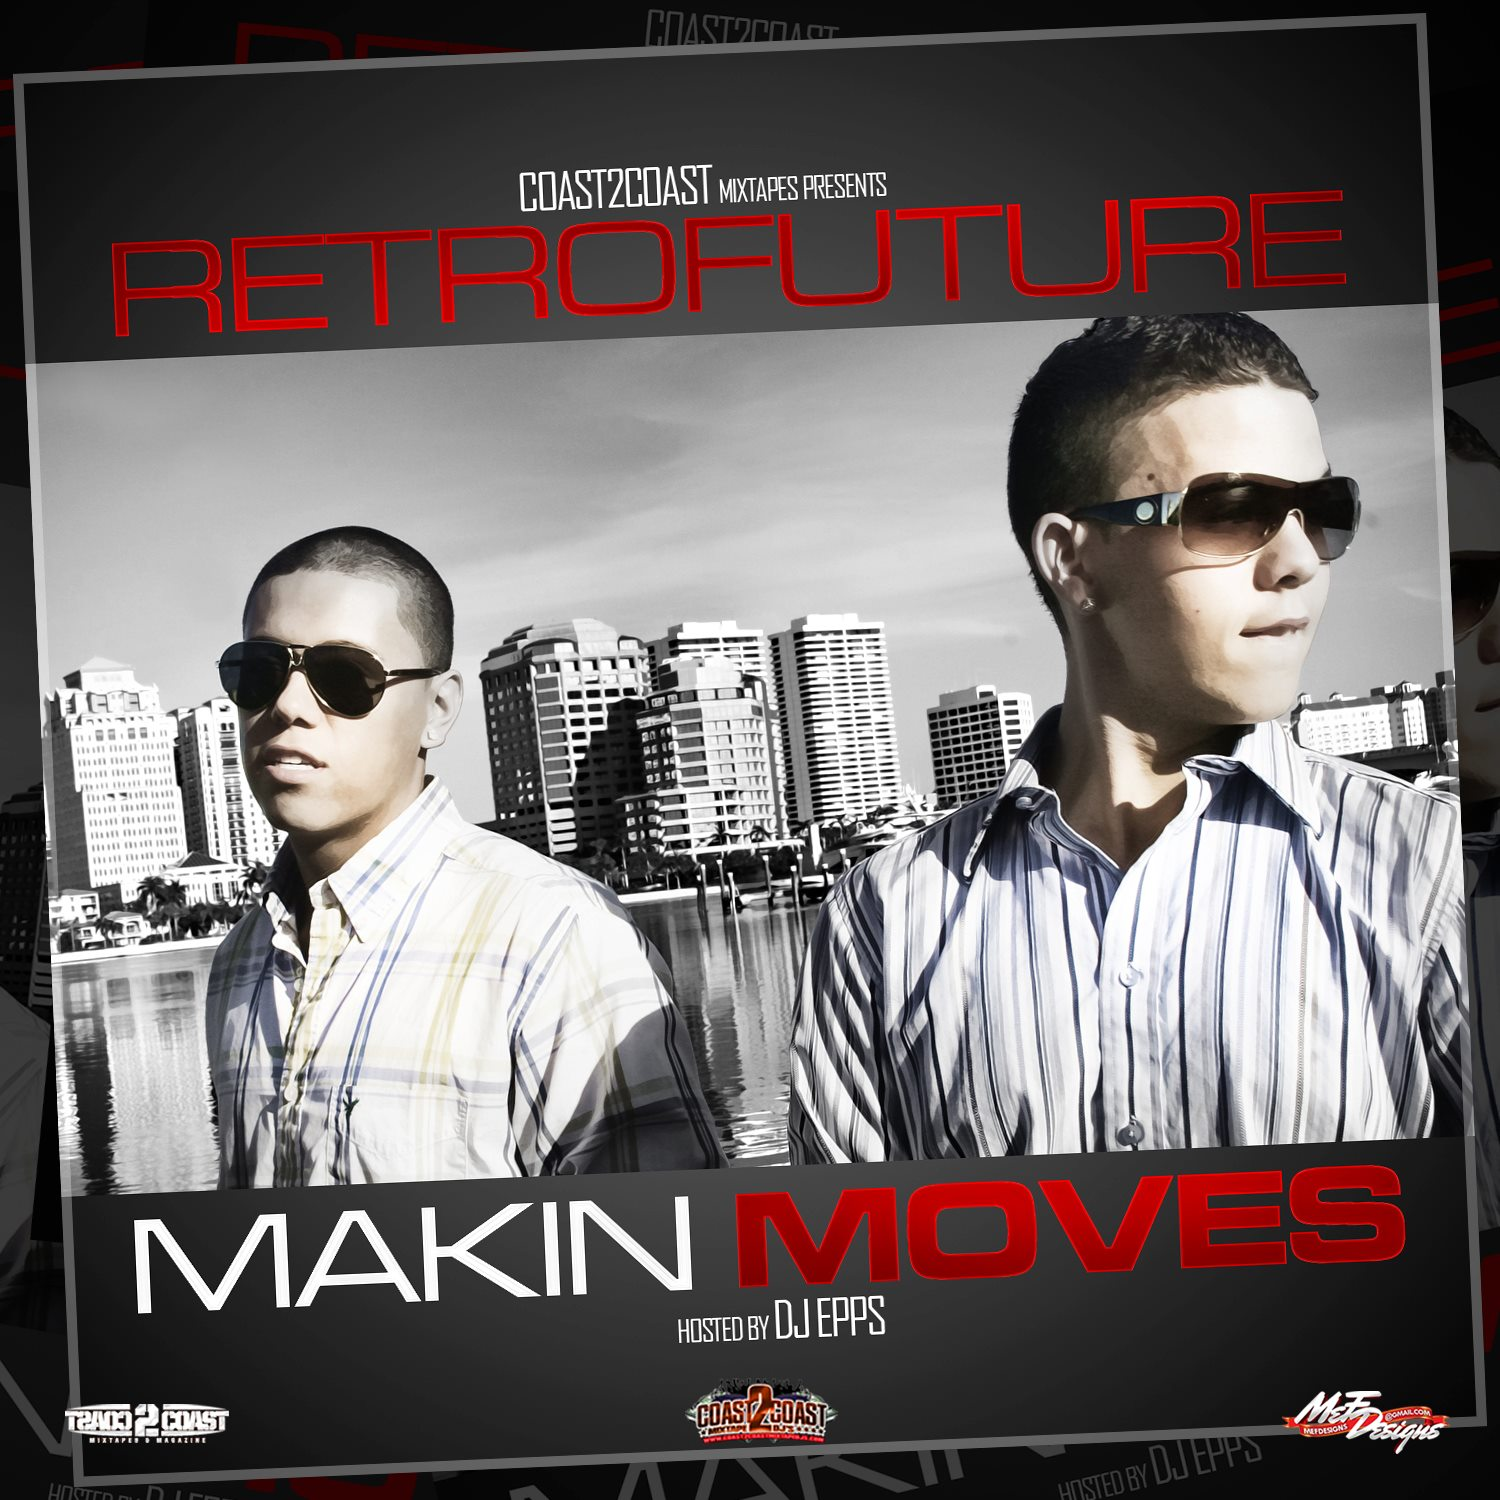 Retrofuture - Makin Moves